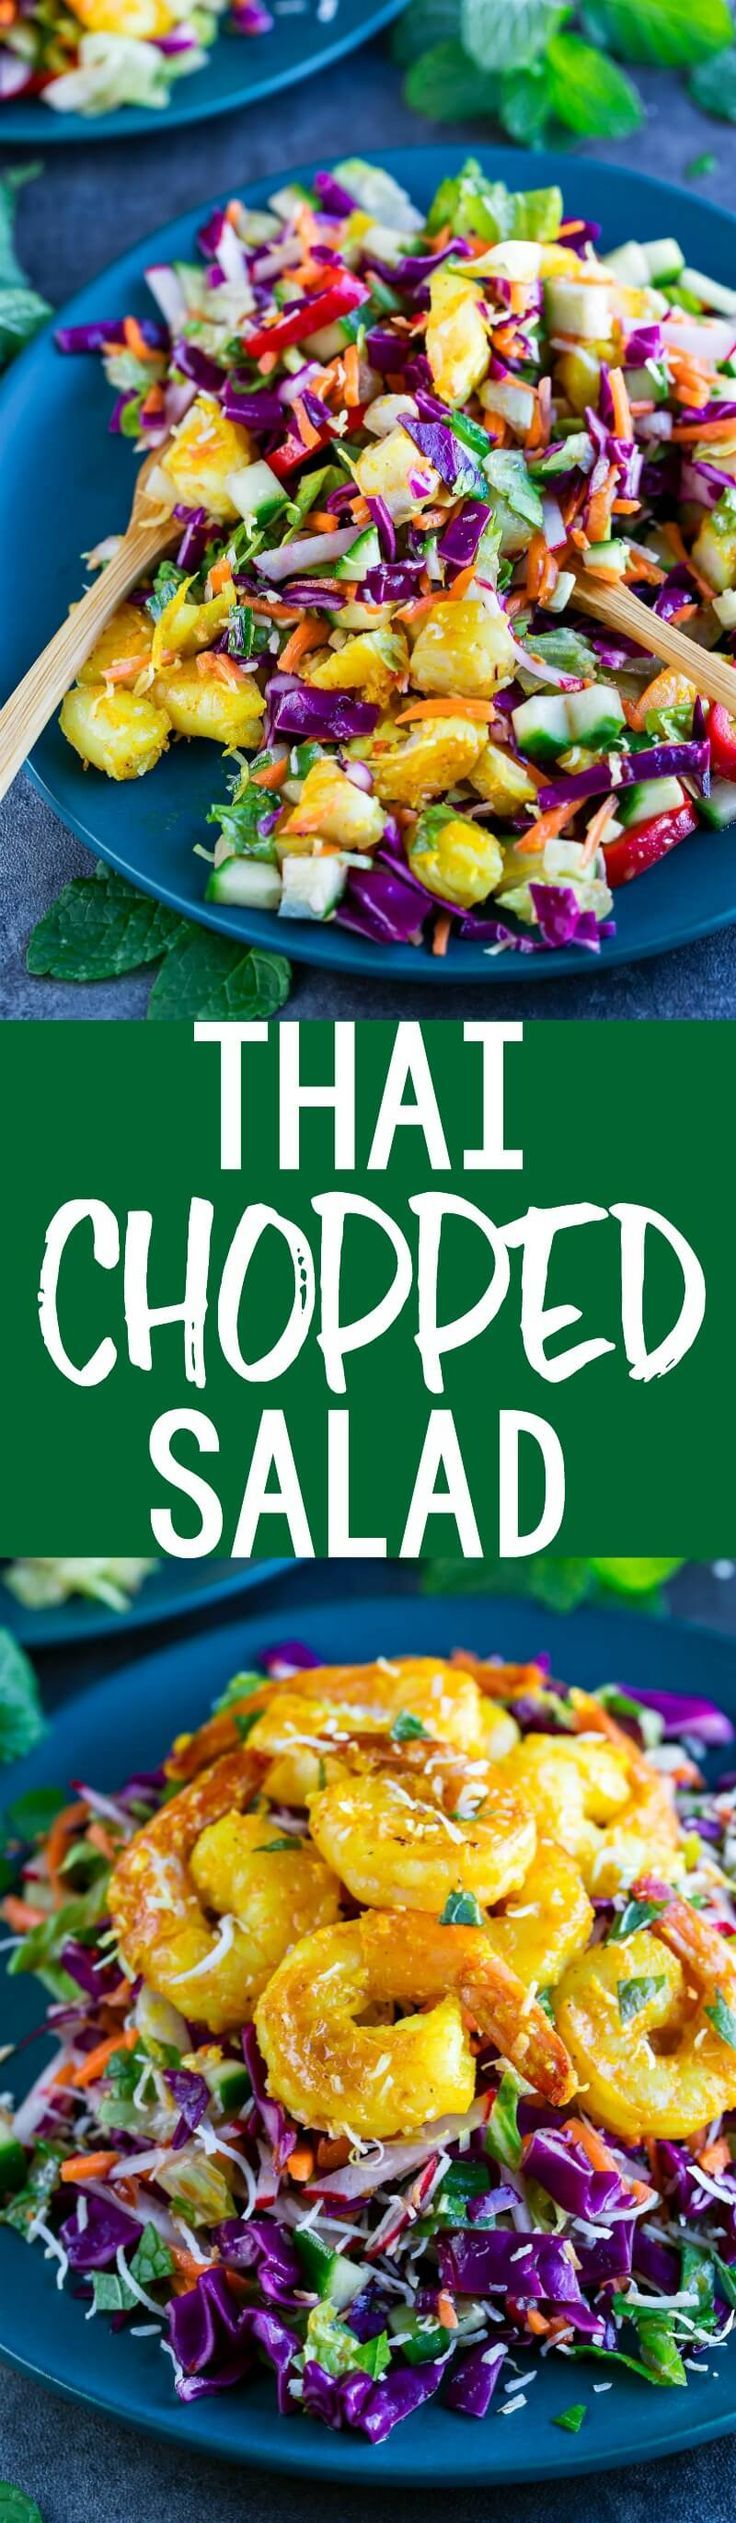 This crazy delicious Thai Chopped Salad with Lemongrass Ginger Shrimp is fresh and healthy! Paleo, Dairy-Free, Gluten-Free, and Whole30 compliant.